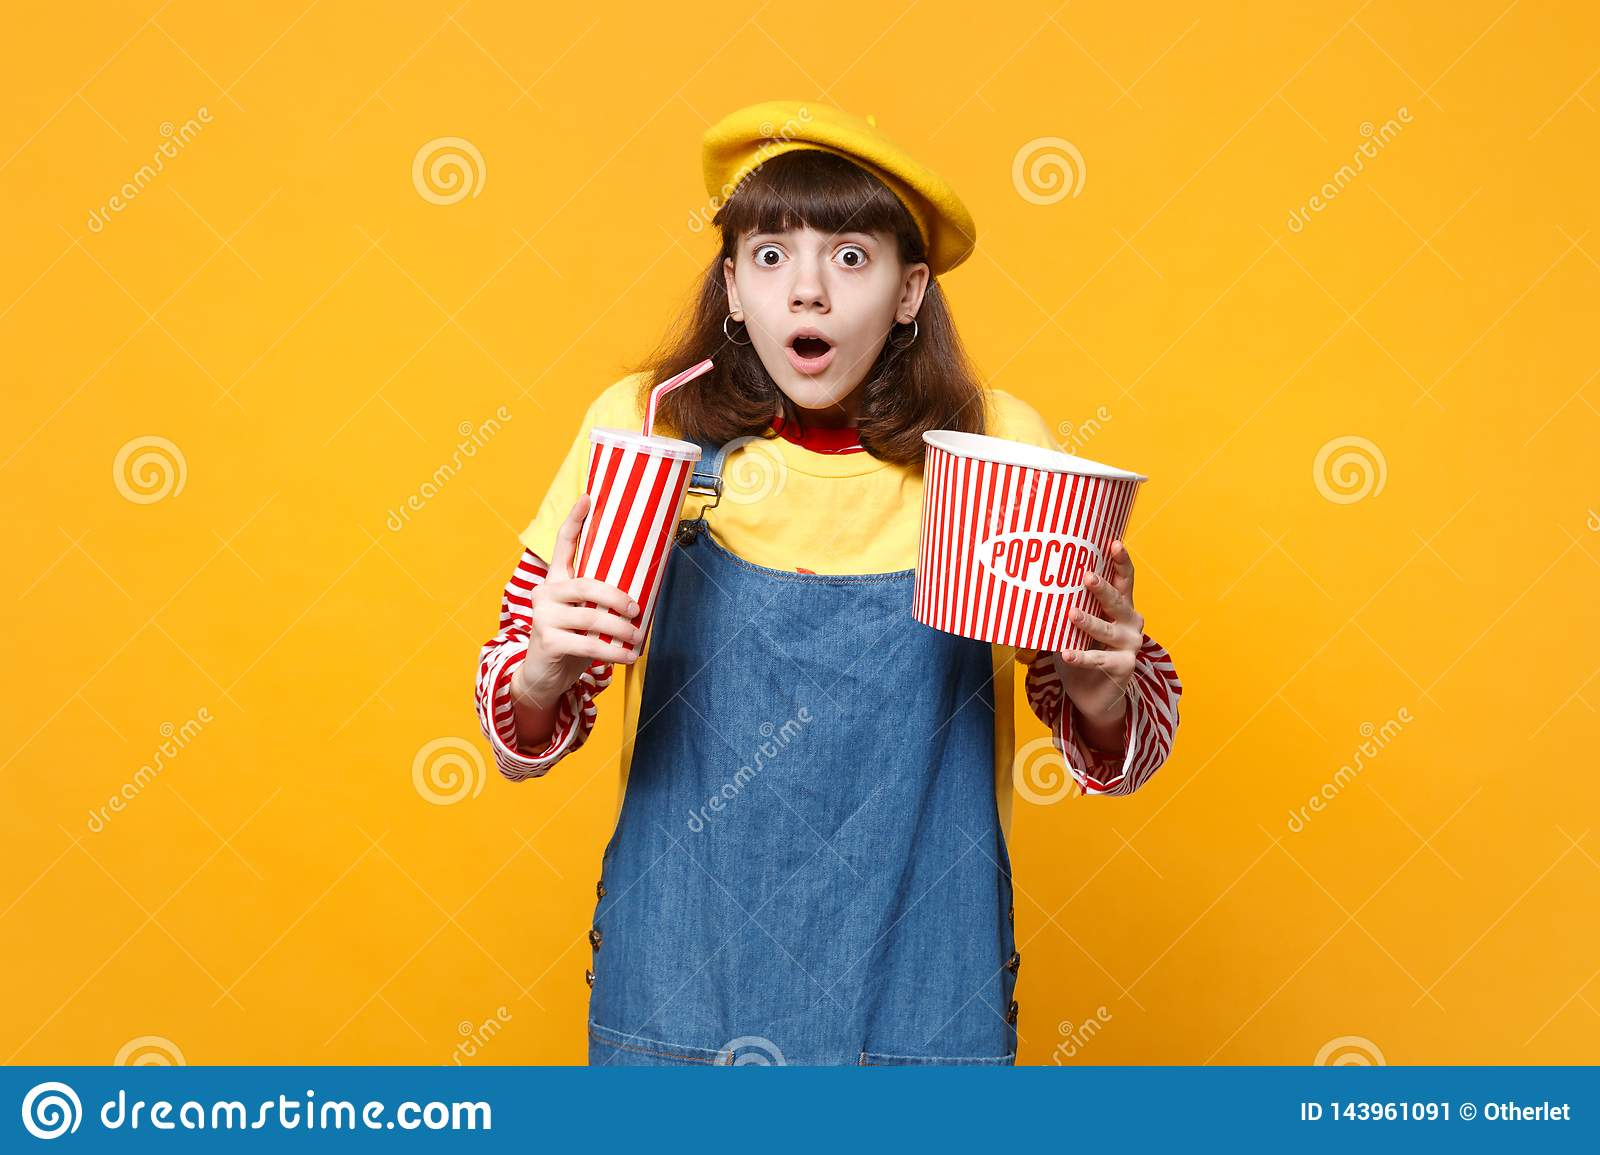 Shocked girl teenager in french beret, denim sundress hold plastic cup of cola or soda, bucket of popcorn isolated on